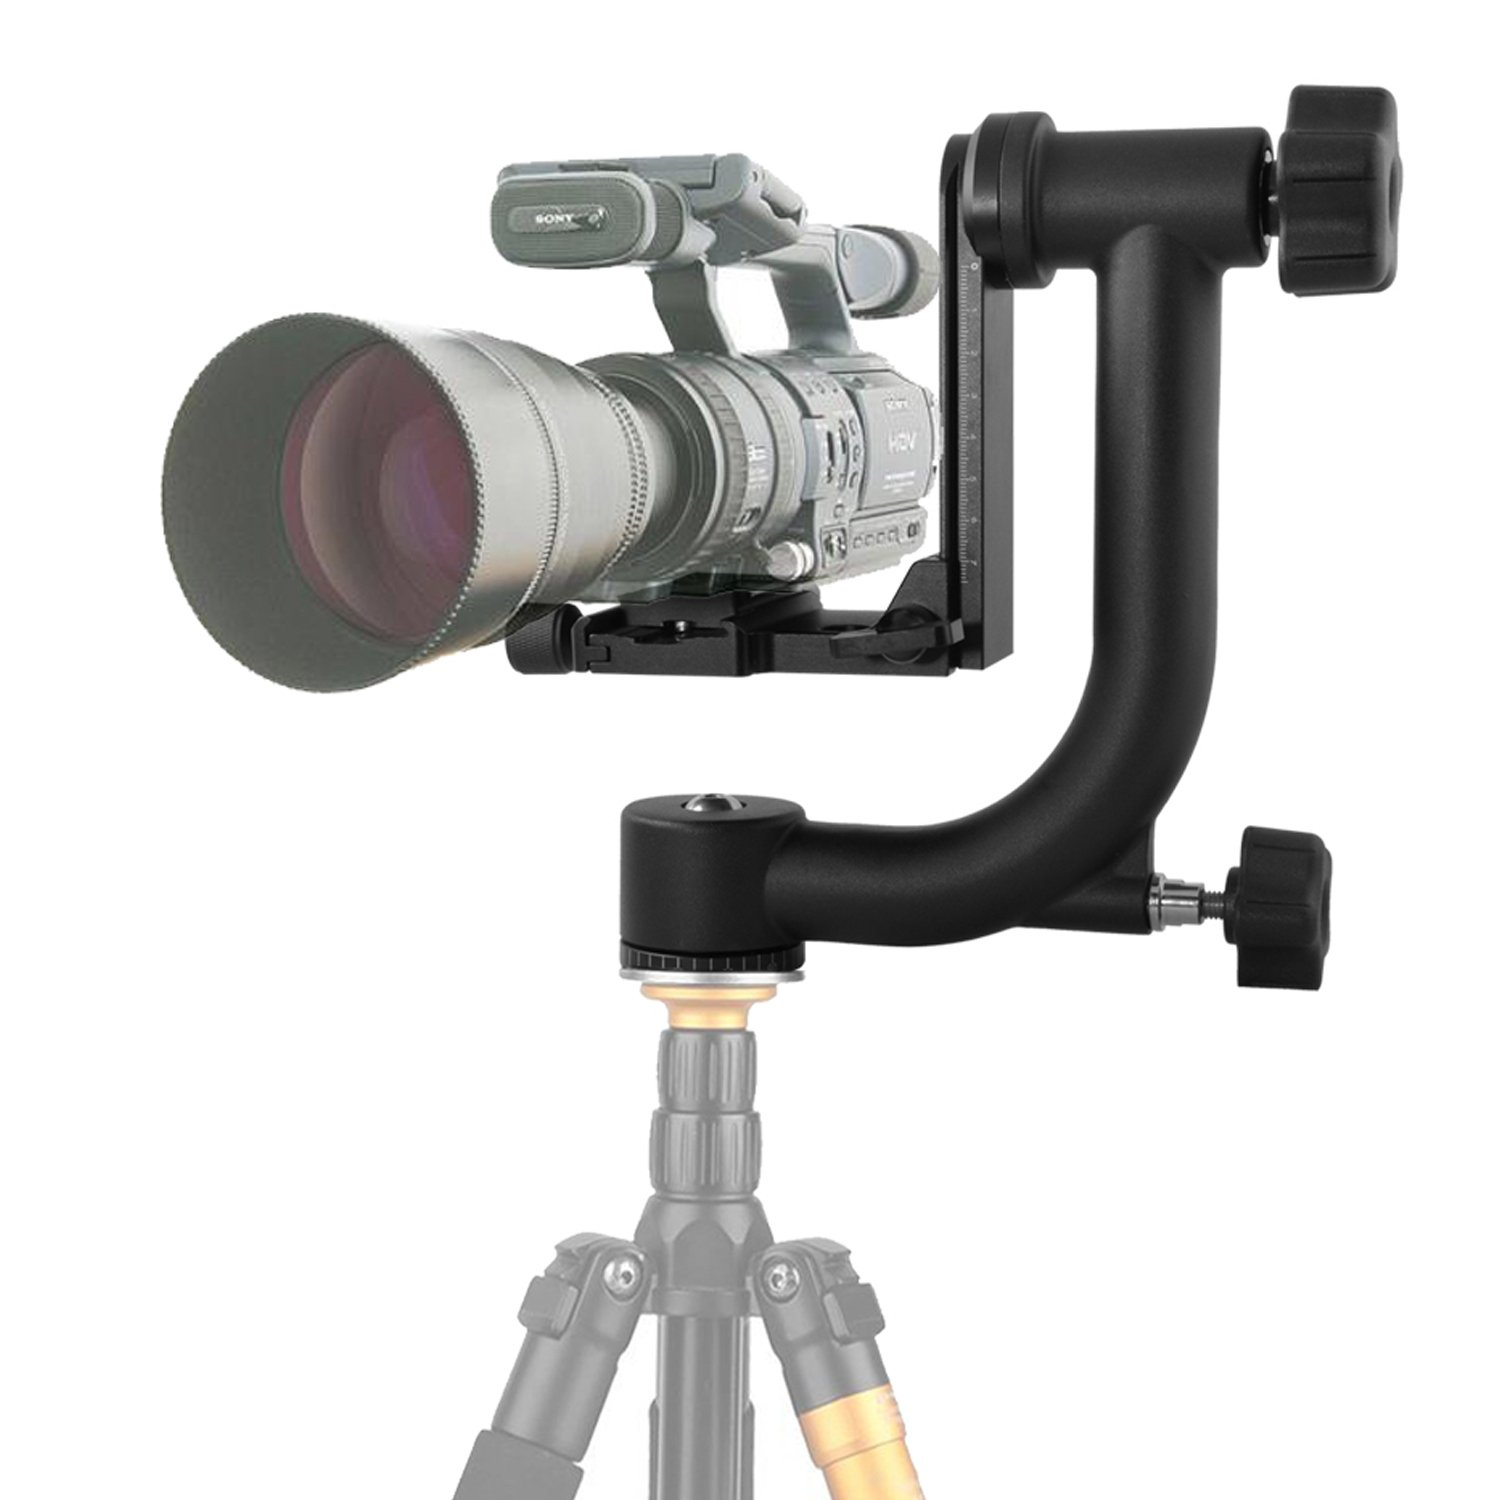 pangshi Professional Gimbal Tripod Head with Arca-Swiss Quick-Release Plate by pangshi